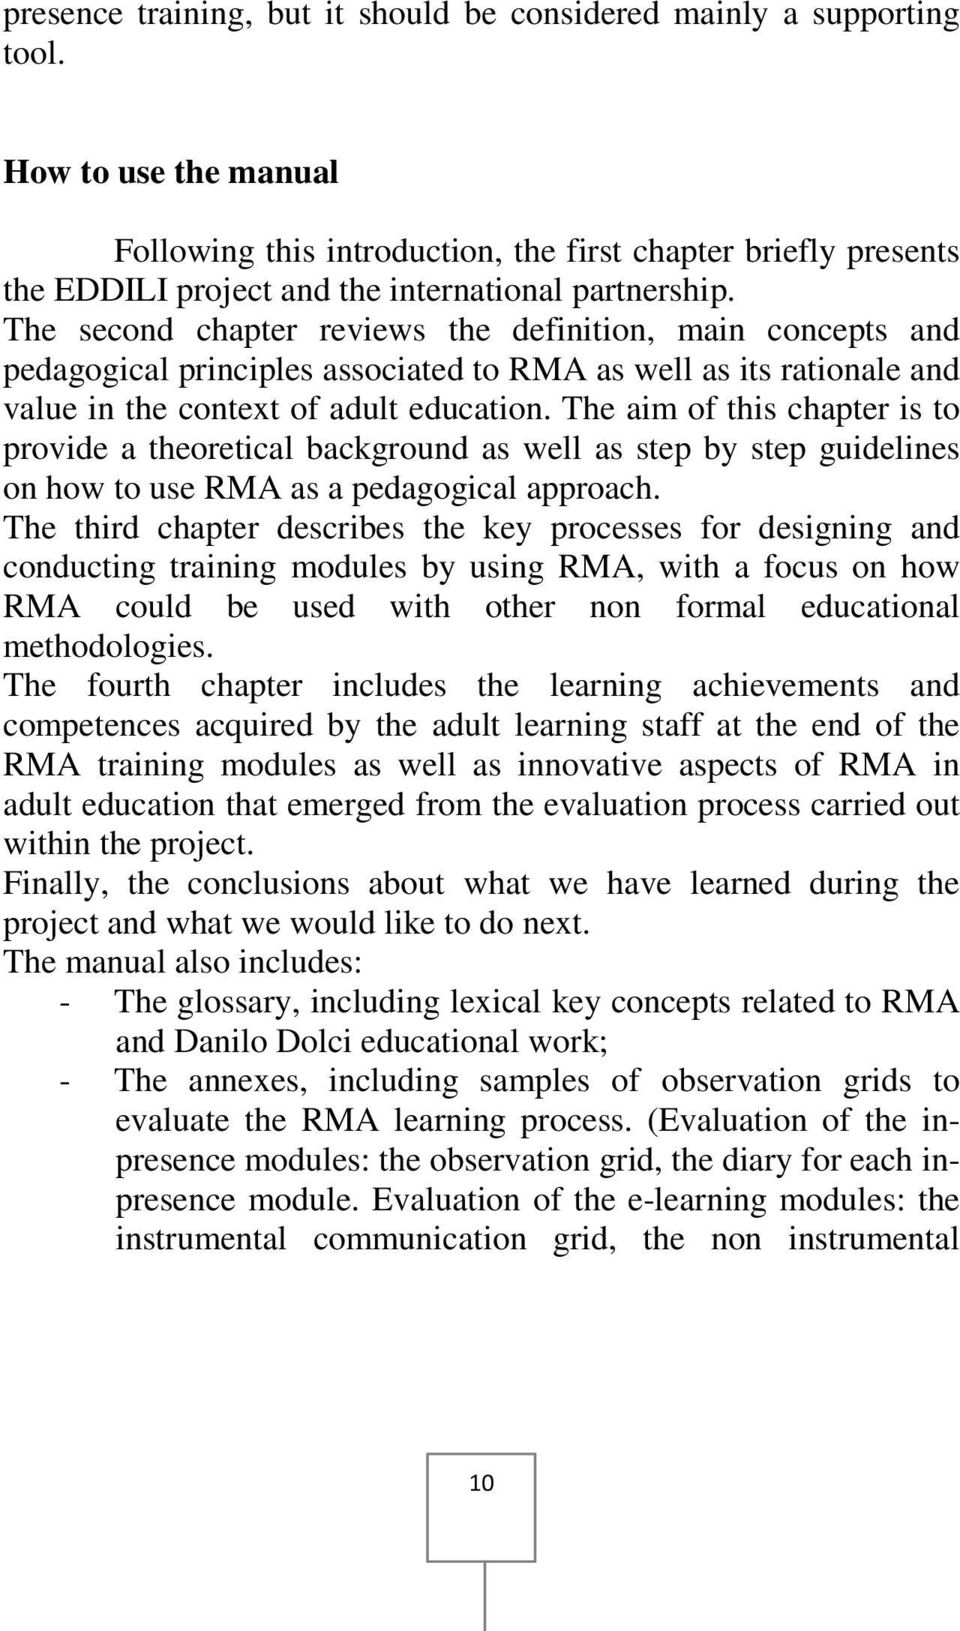 The second chapter reviews the definition, main concepts and pedagogical principles associated to RMA as well as its rationale and value in the context of adult education.